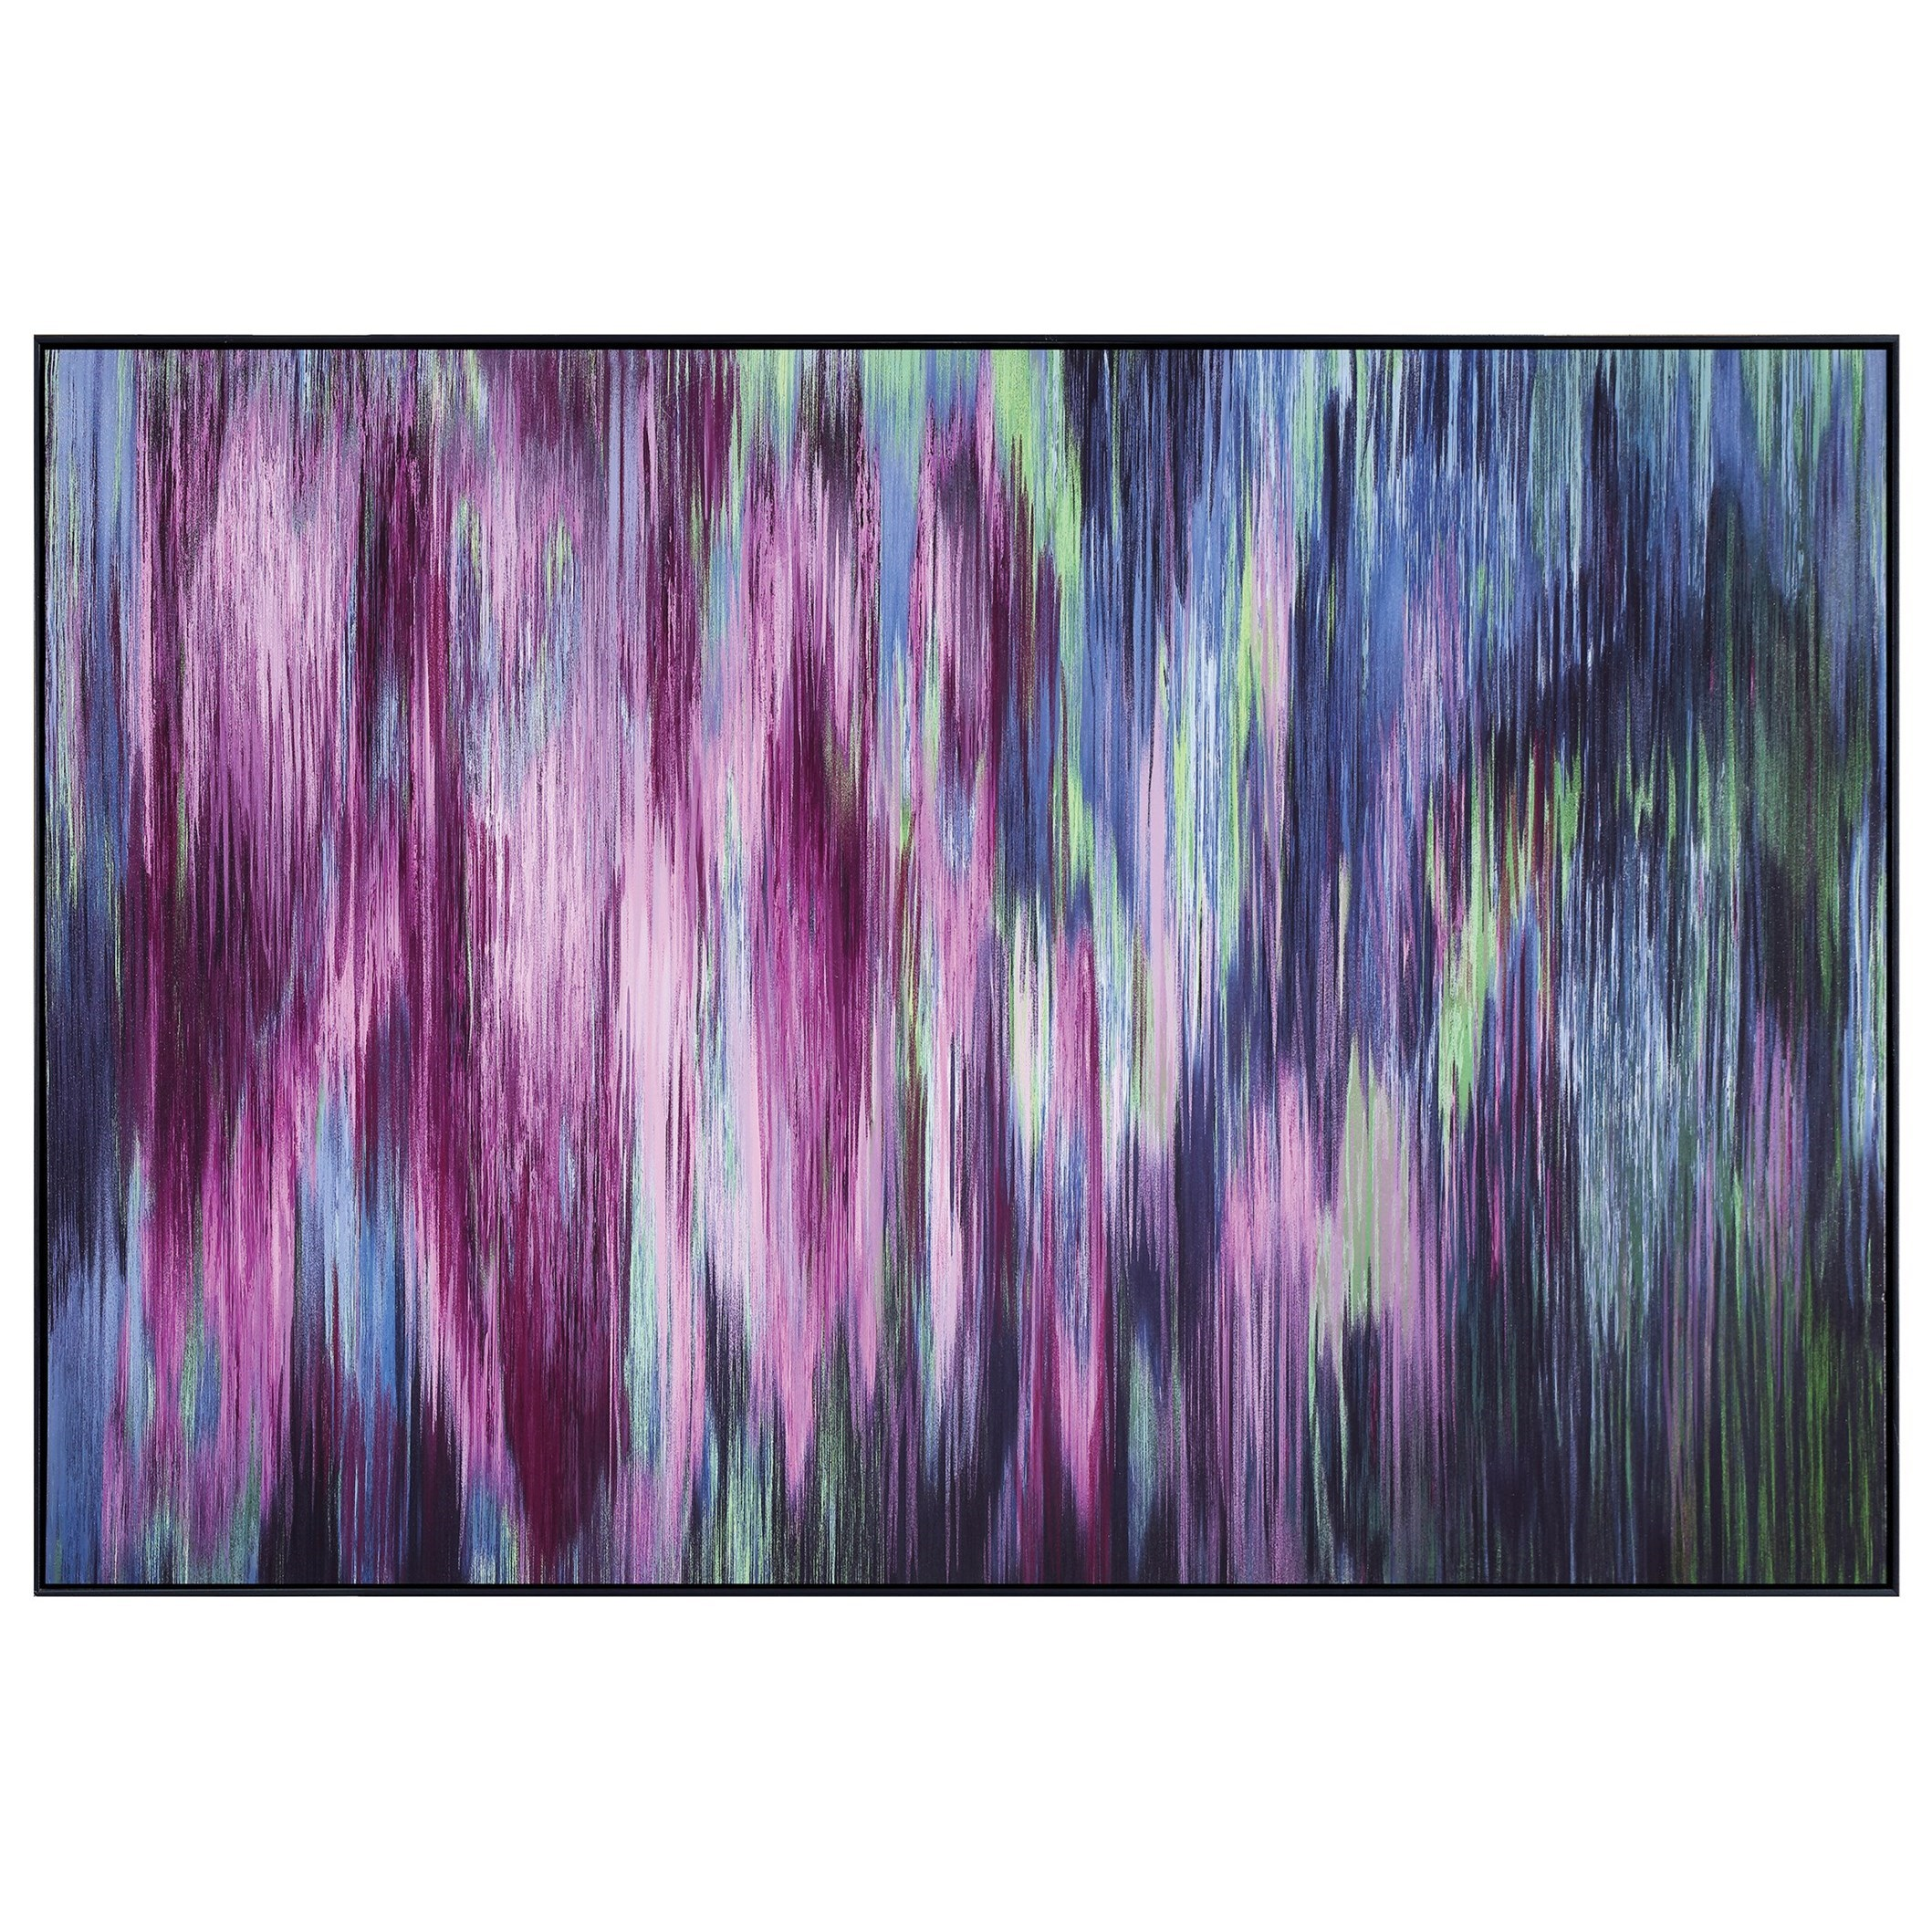 Coaster Wall Art Abstract Wall Art - Item Number: 961195